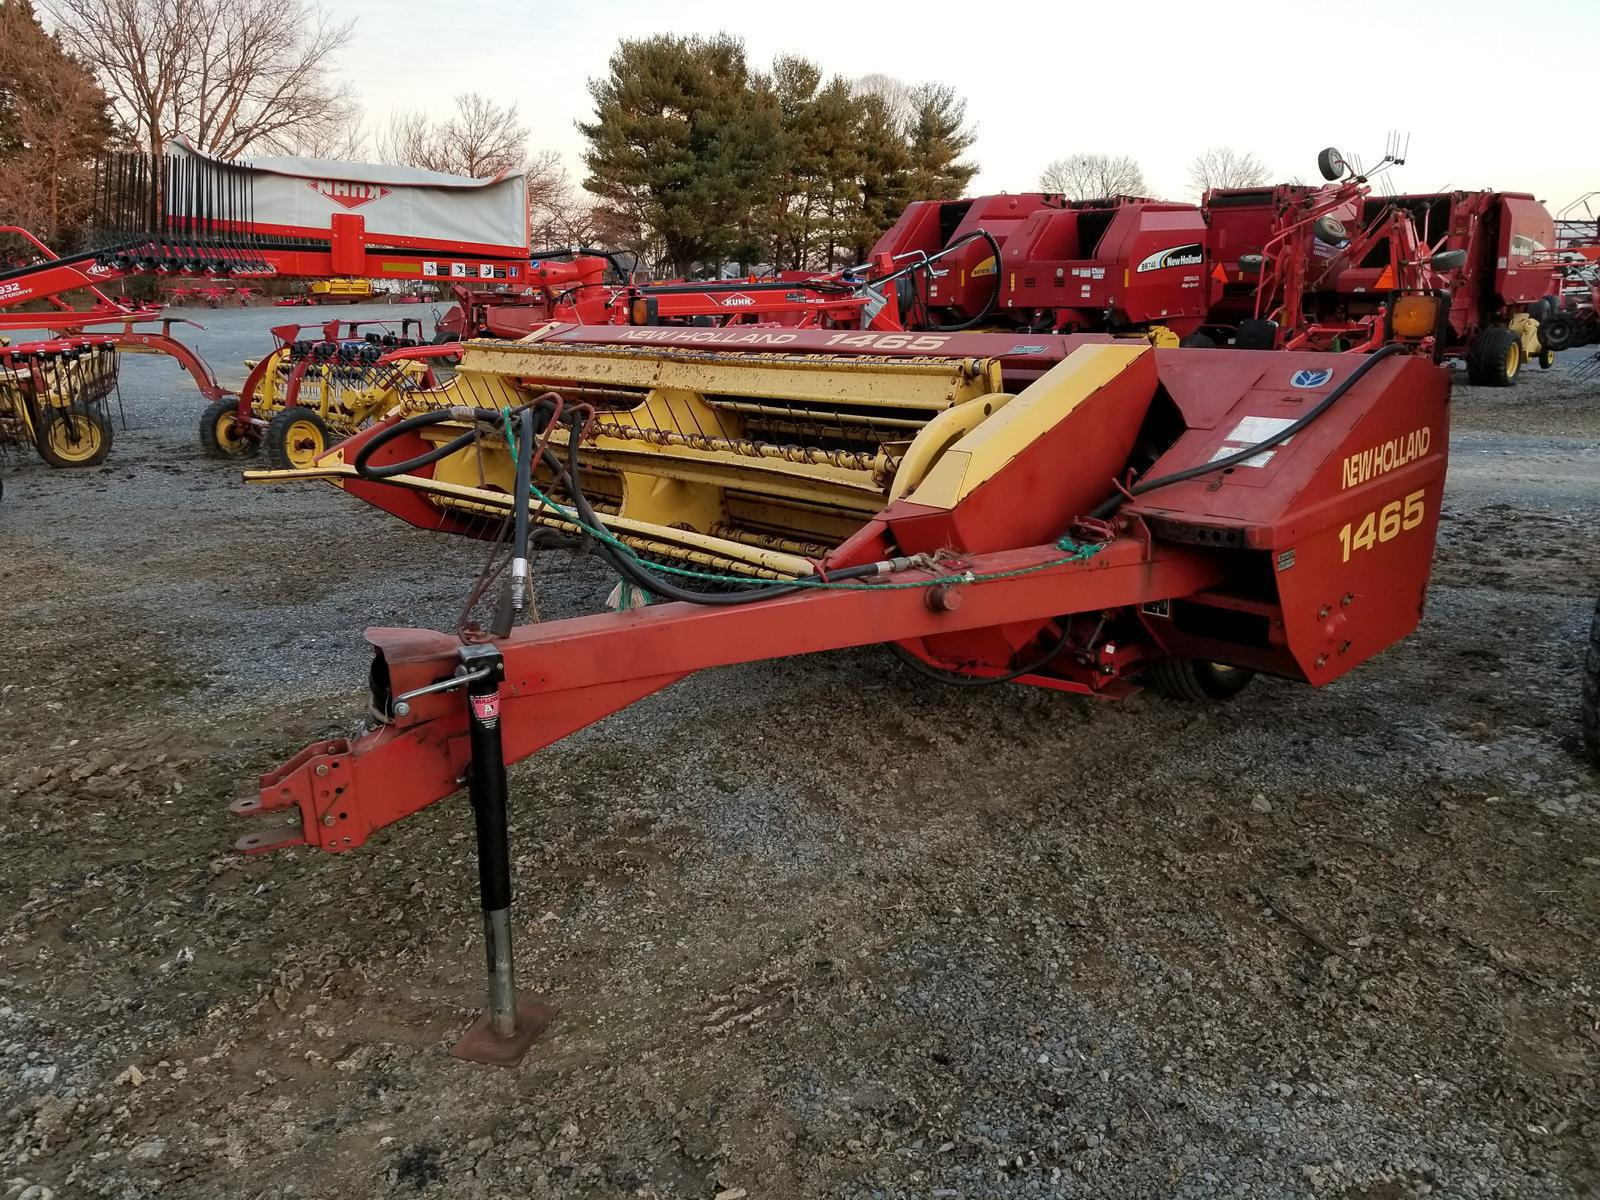 Inventory from New Holland Agriculture and Enorossi